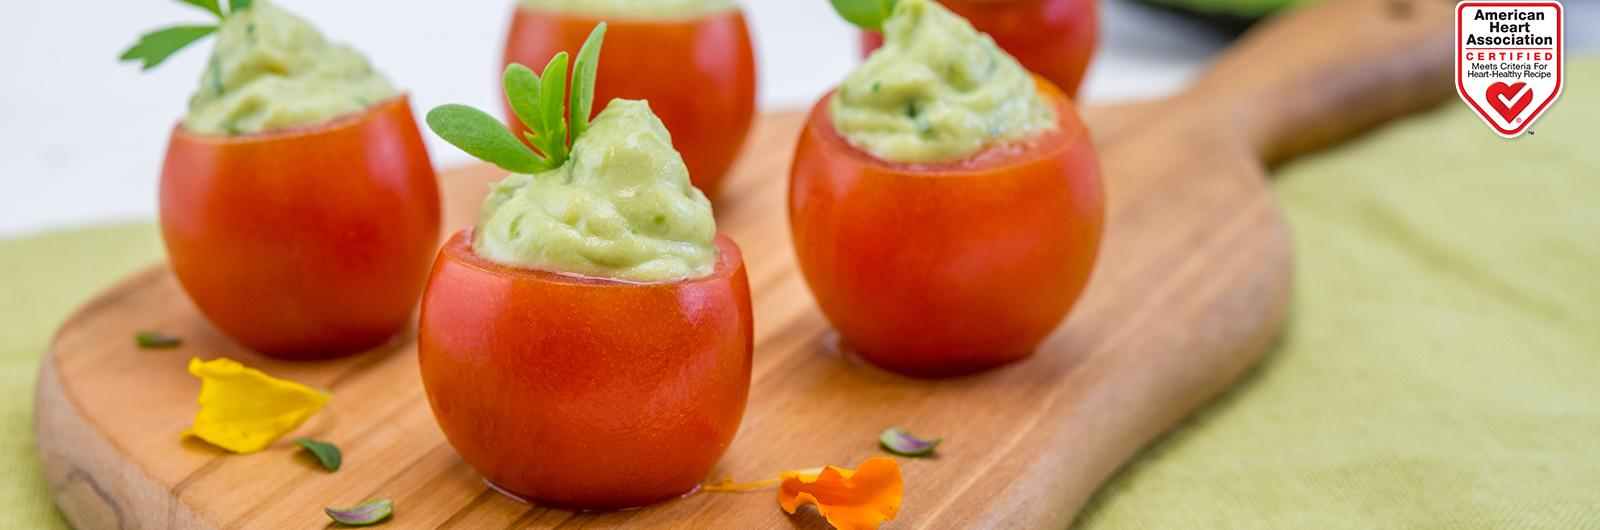 041917.chipotle avo stuffed tomatoes.highres.11 0